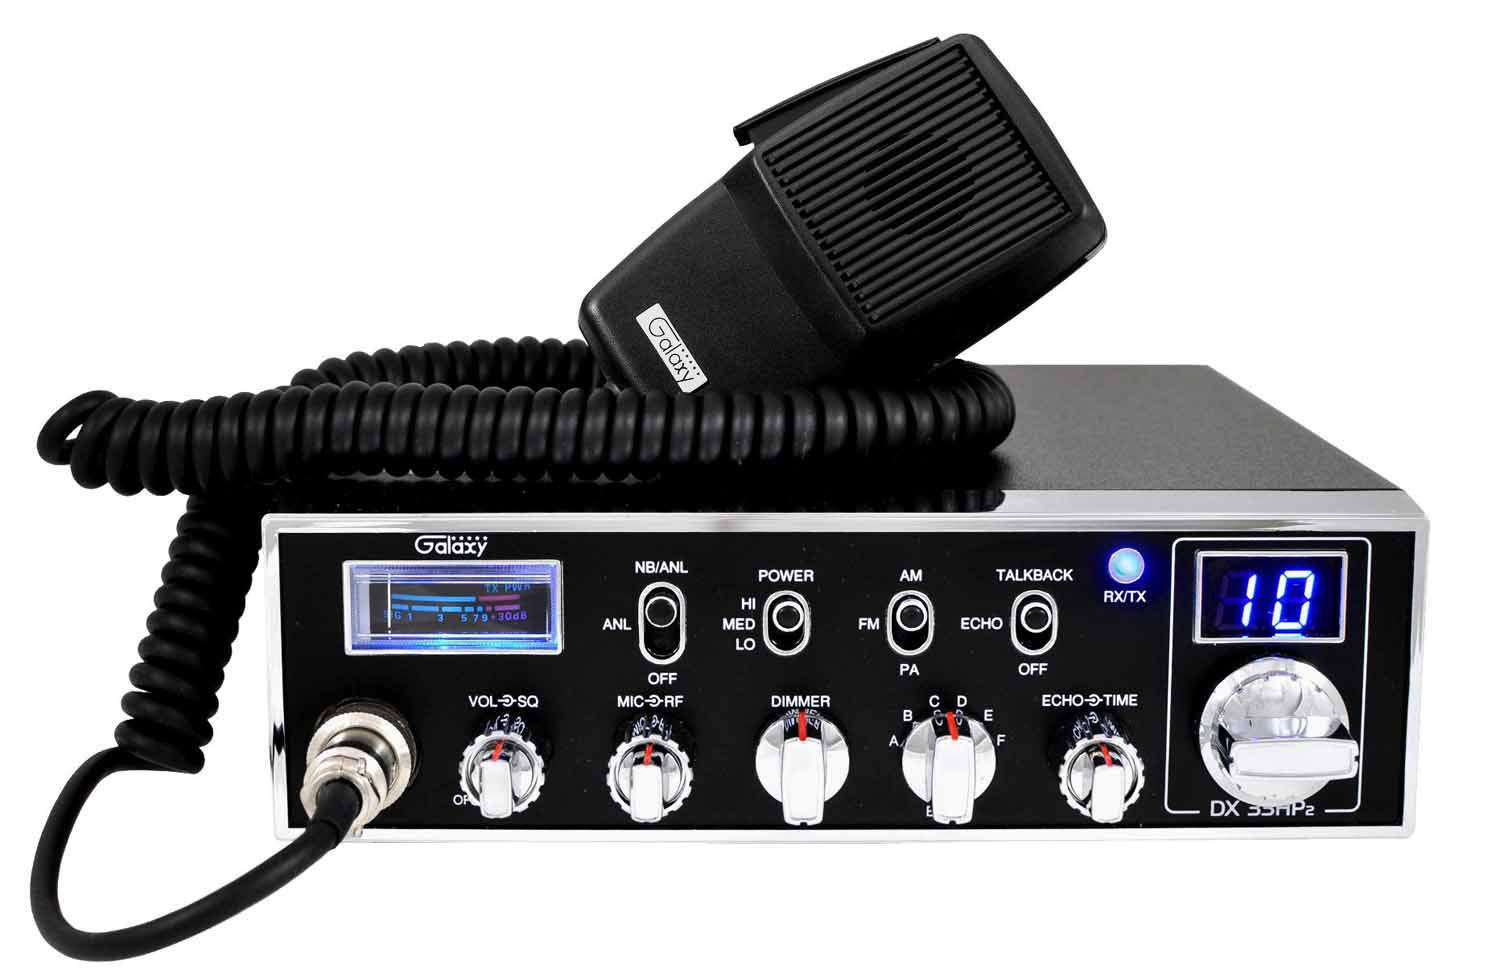 DX33HP2 - Galaxy 6 Band 10 Meter 45 Watt Mobile Radio